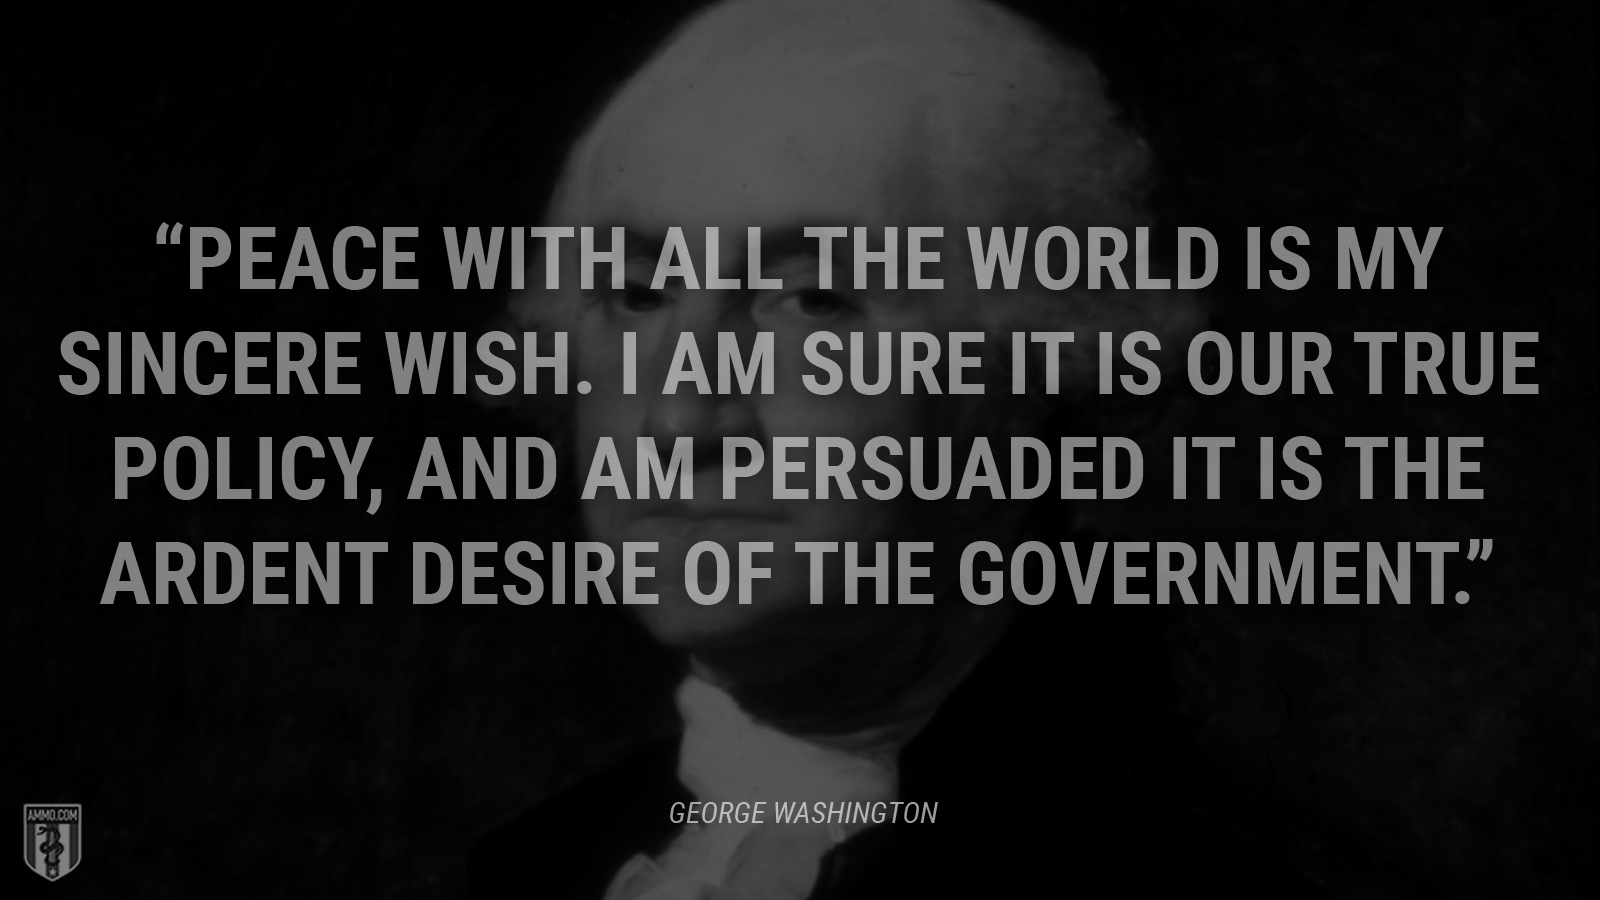 """Peace with all the world is my sincere wish. I am sure it is our true policy, and am persuaded it is the ardent desire of the government."" - George Washington"